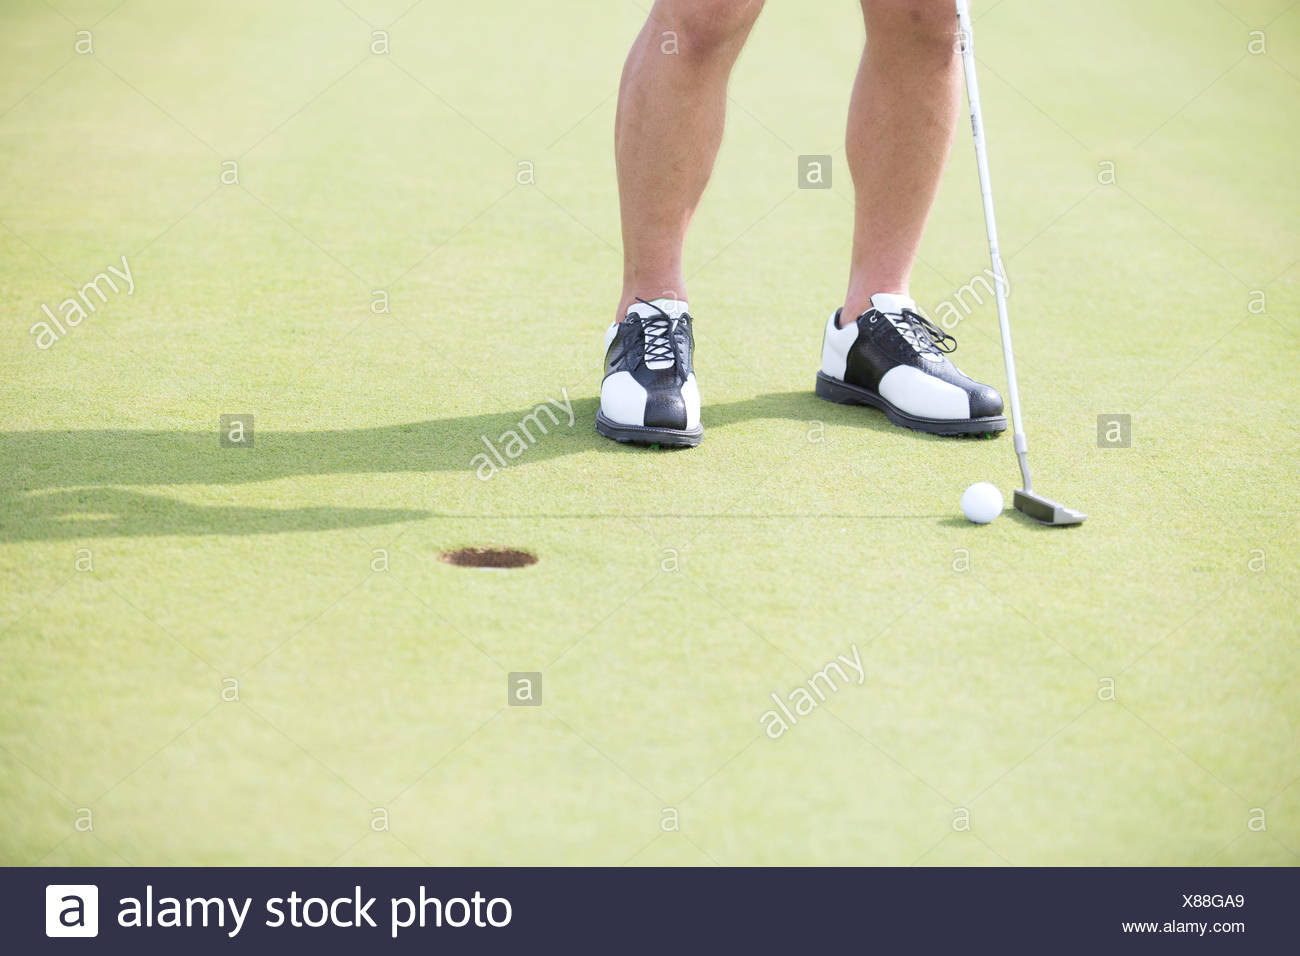 Low section of man with golf club and ball - Stock Image